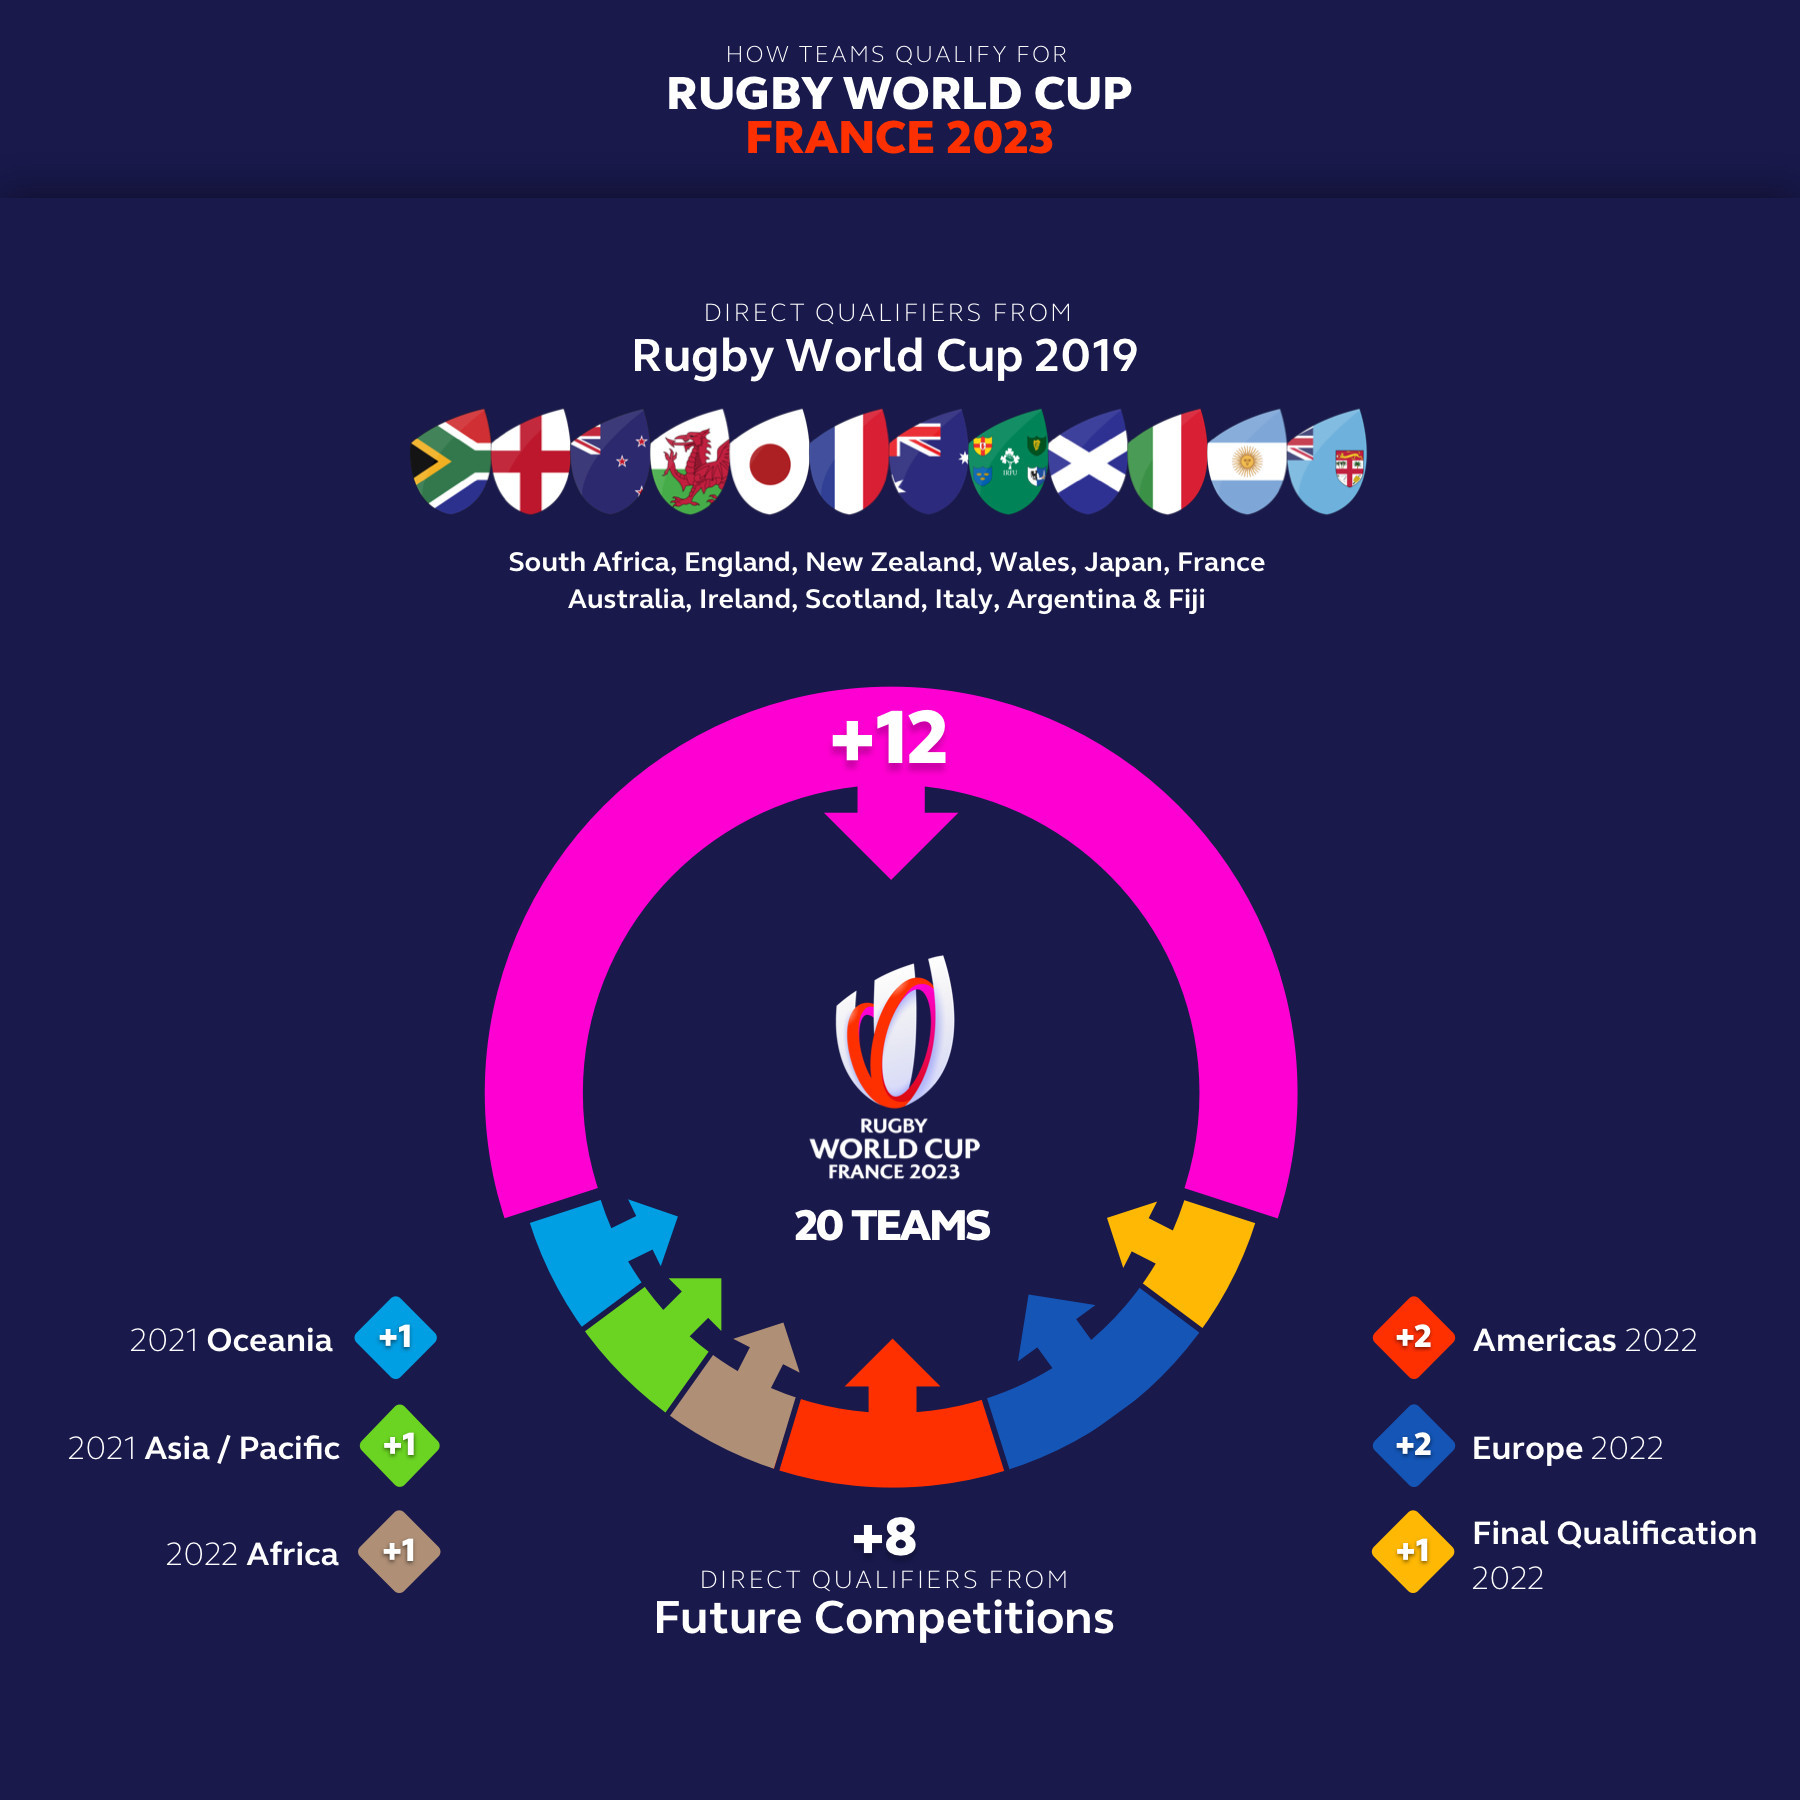 Qualification process for 2023 Rugby World Cup revealed